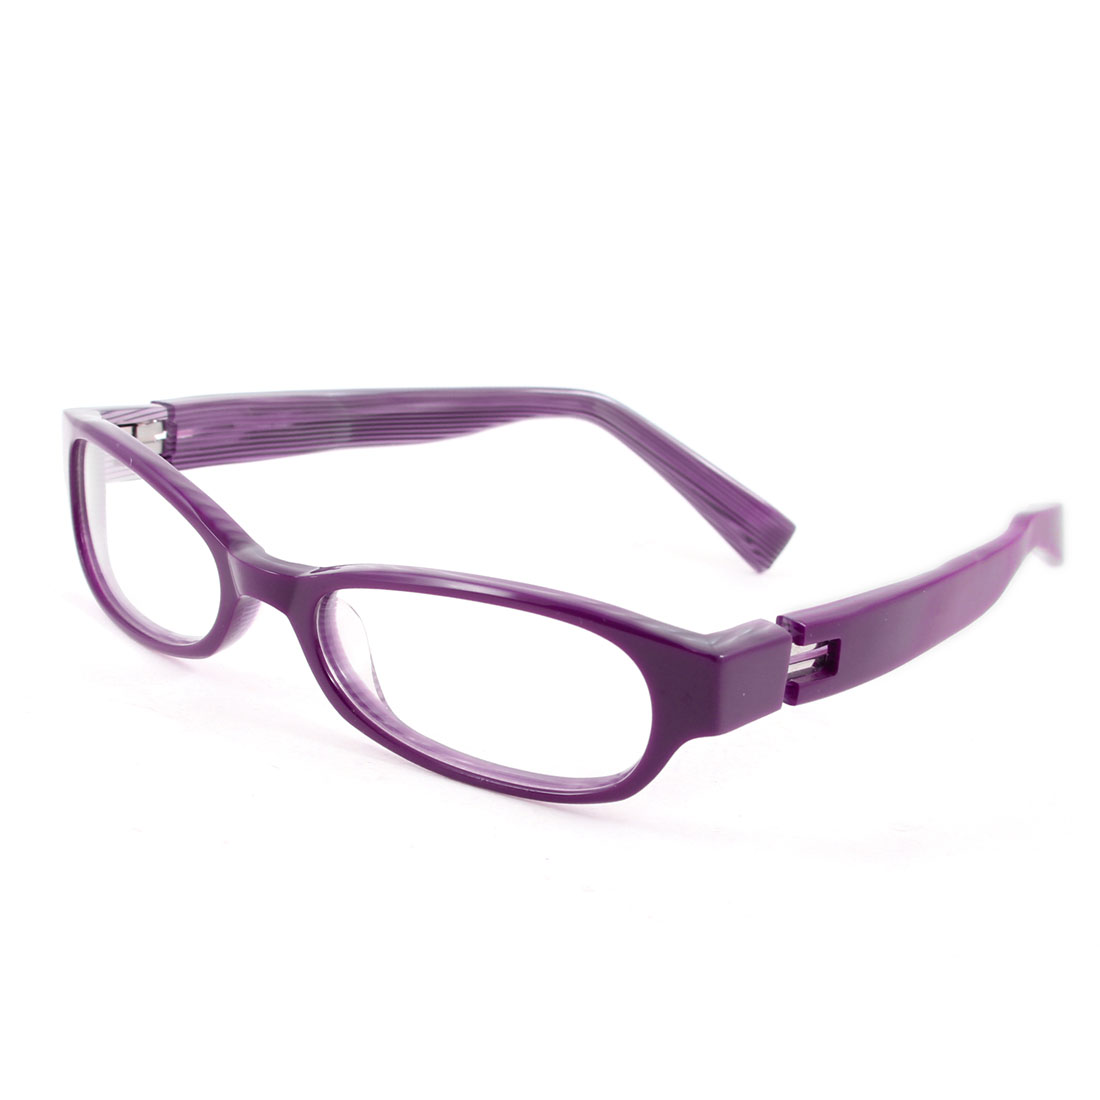 Ladies Woman Plastic Single Bridge Clear Lens Plano Glasses Purple